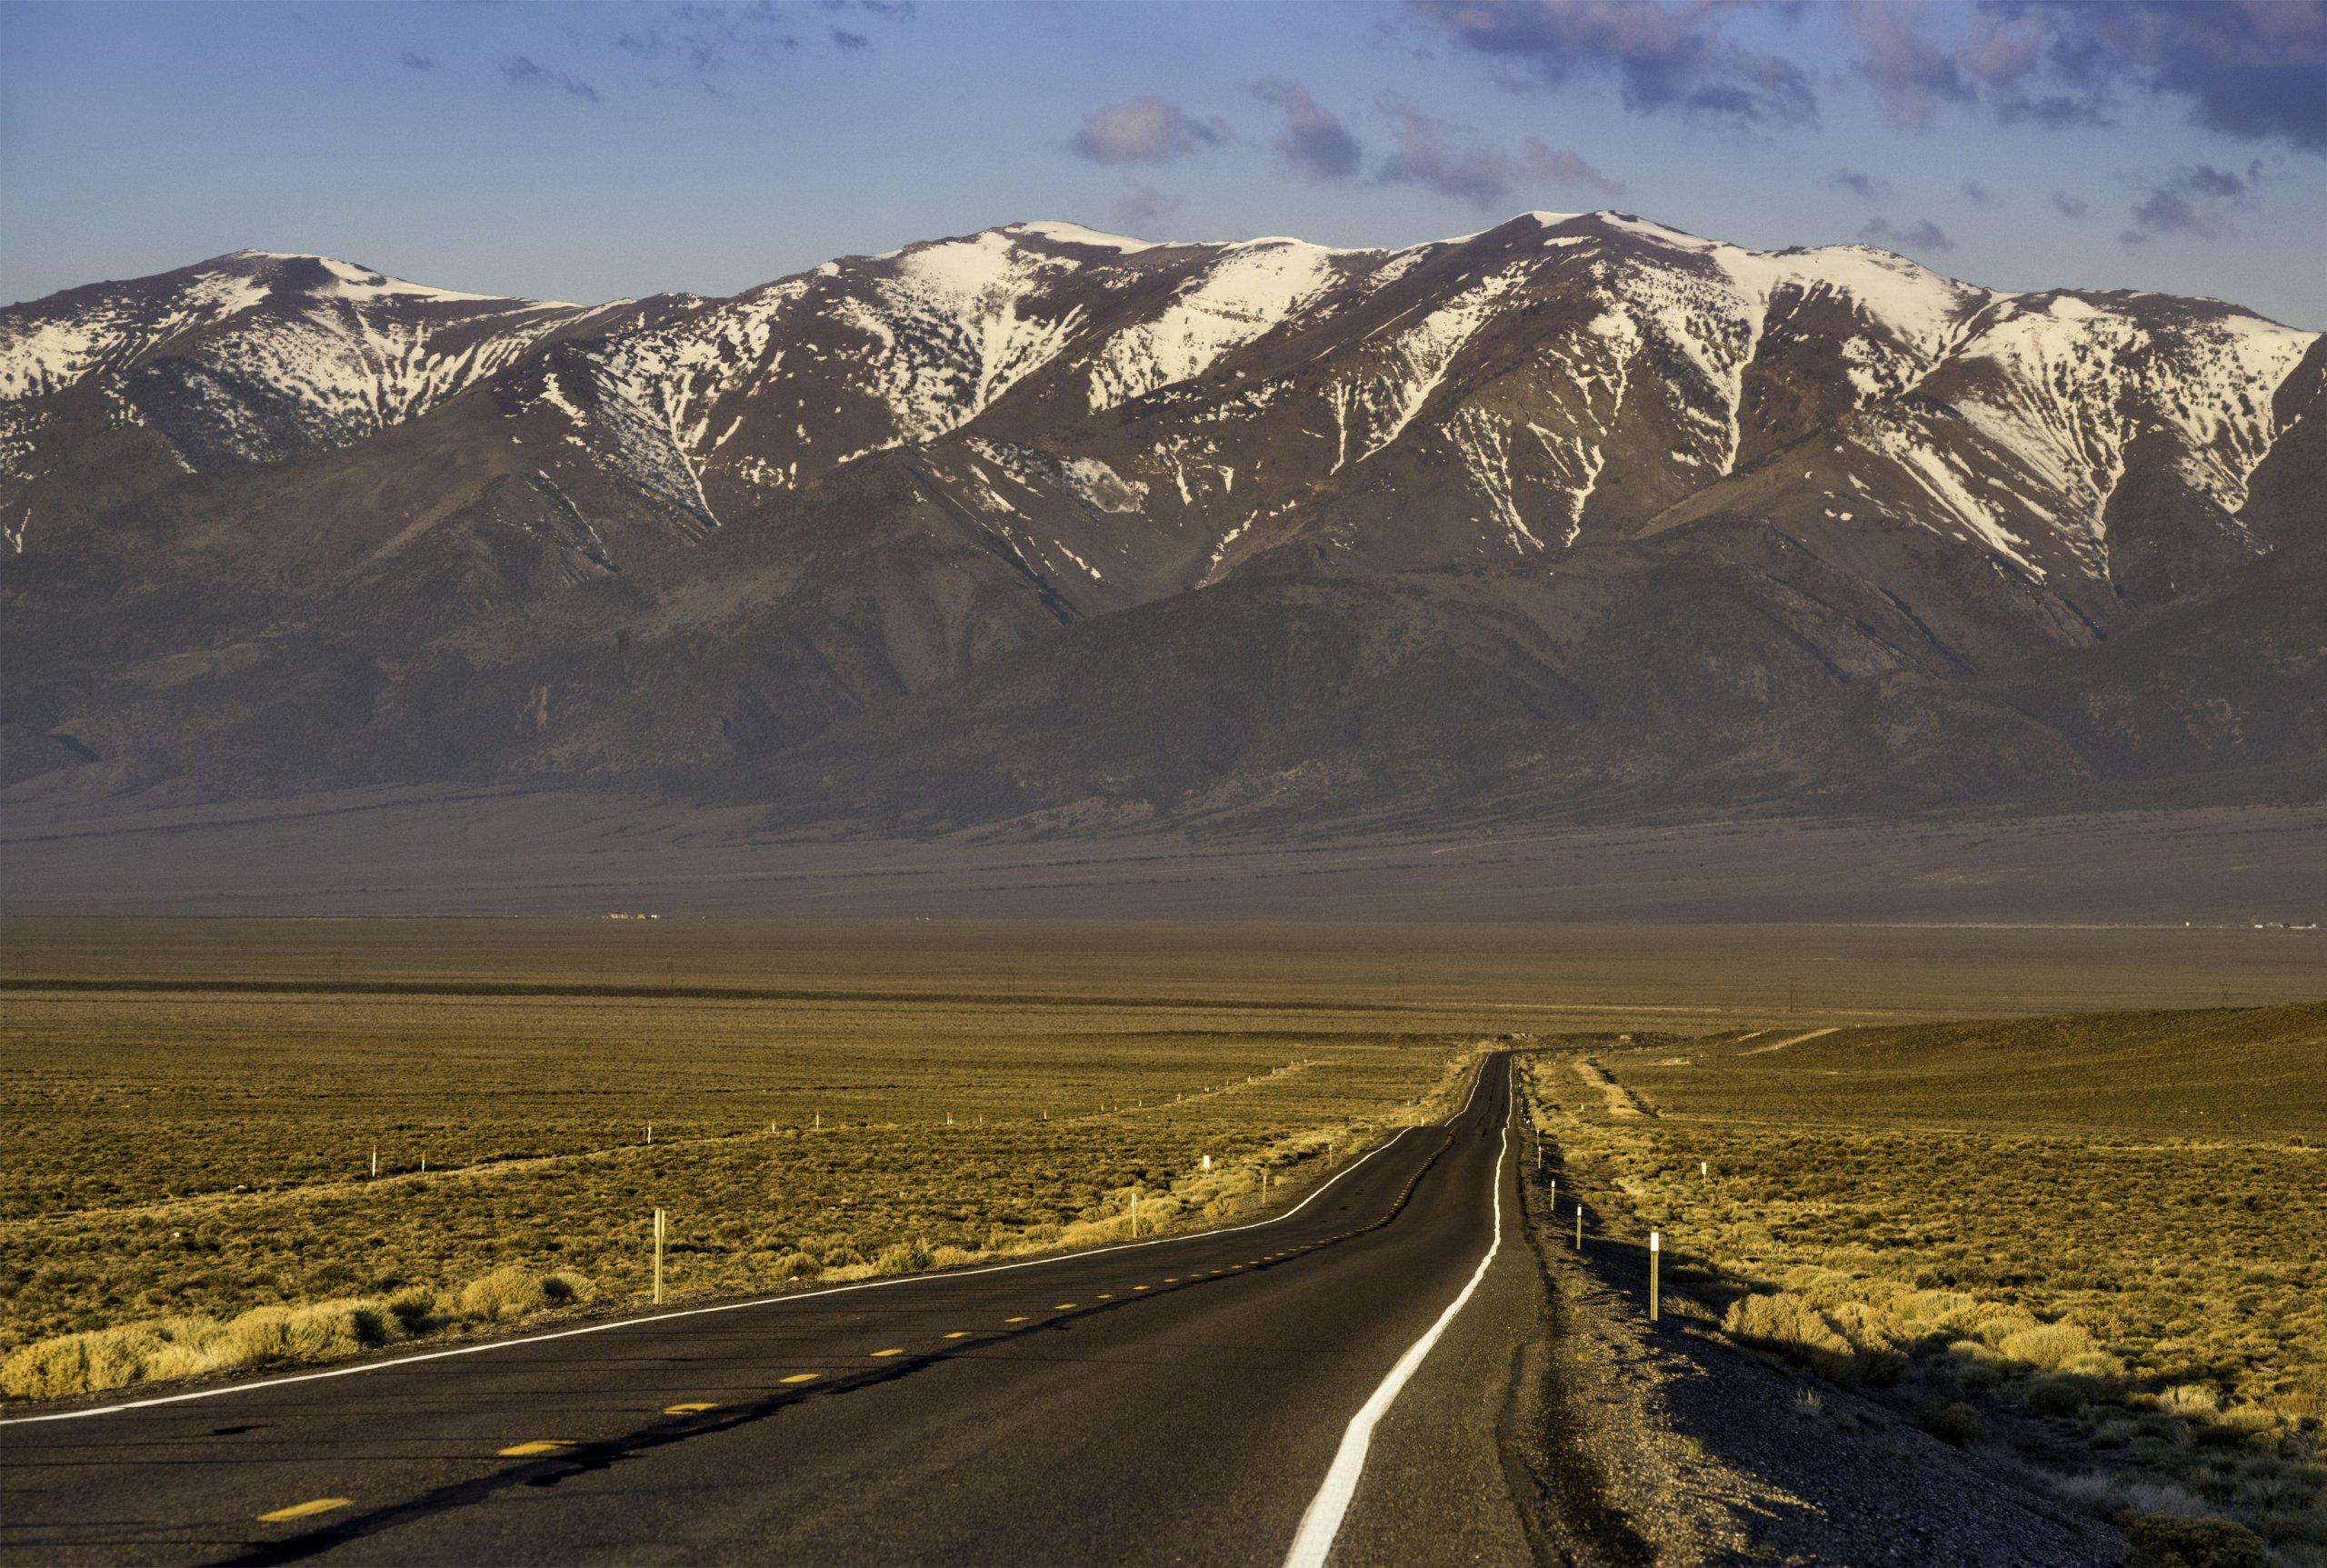 Nevada scenic byway